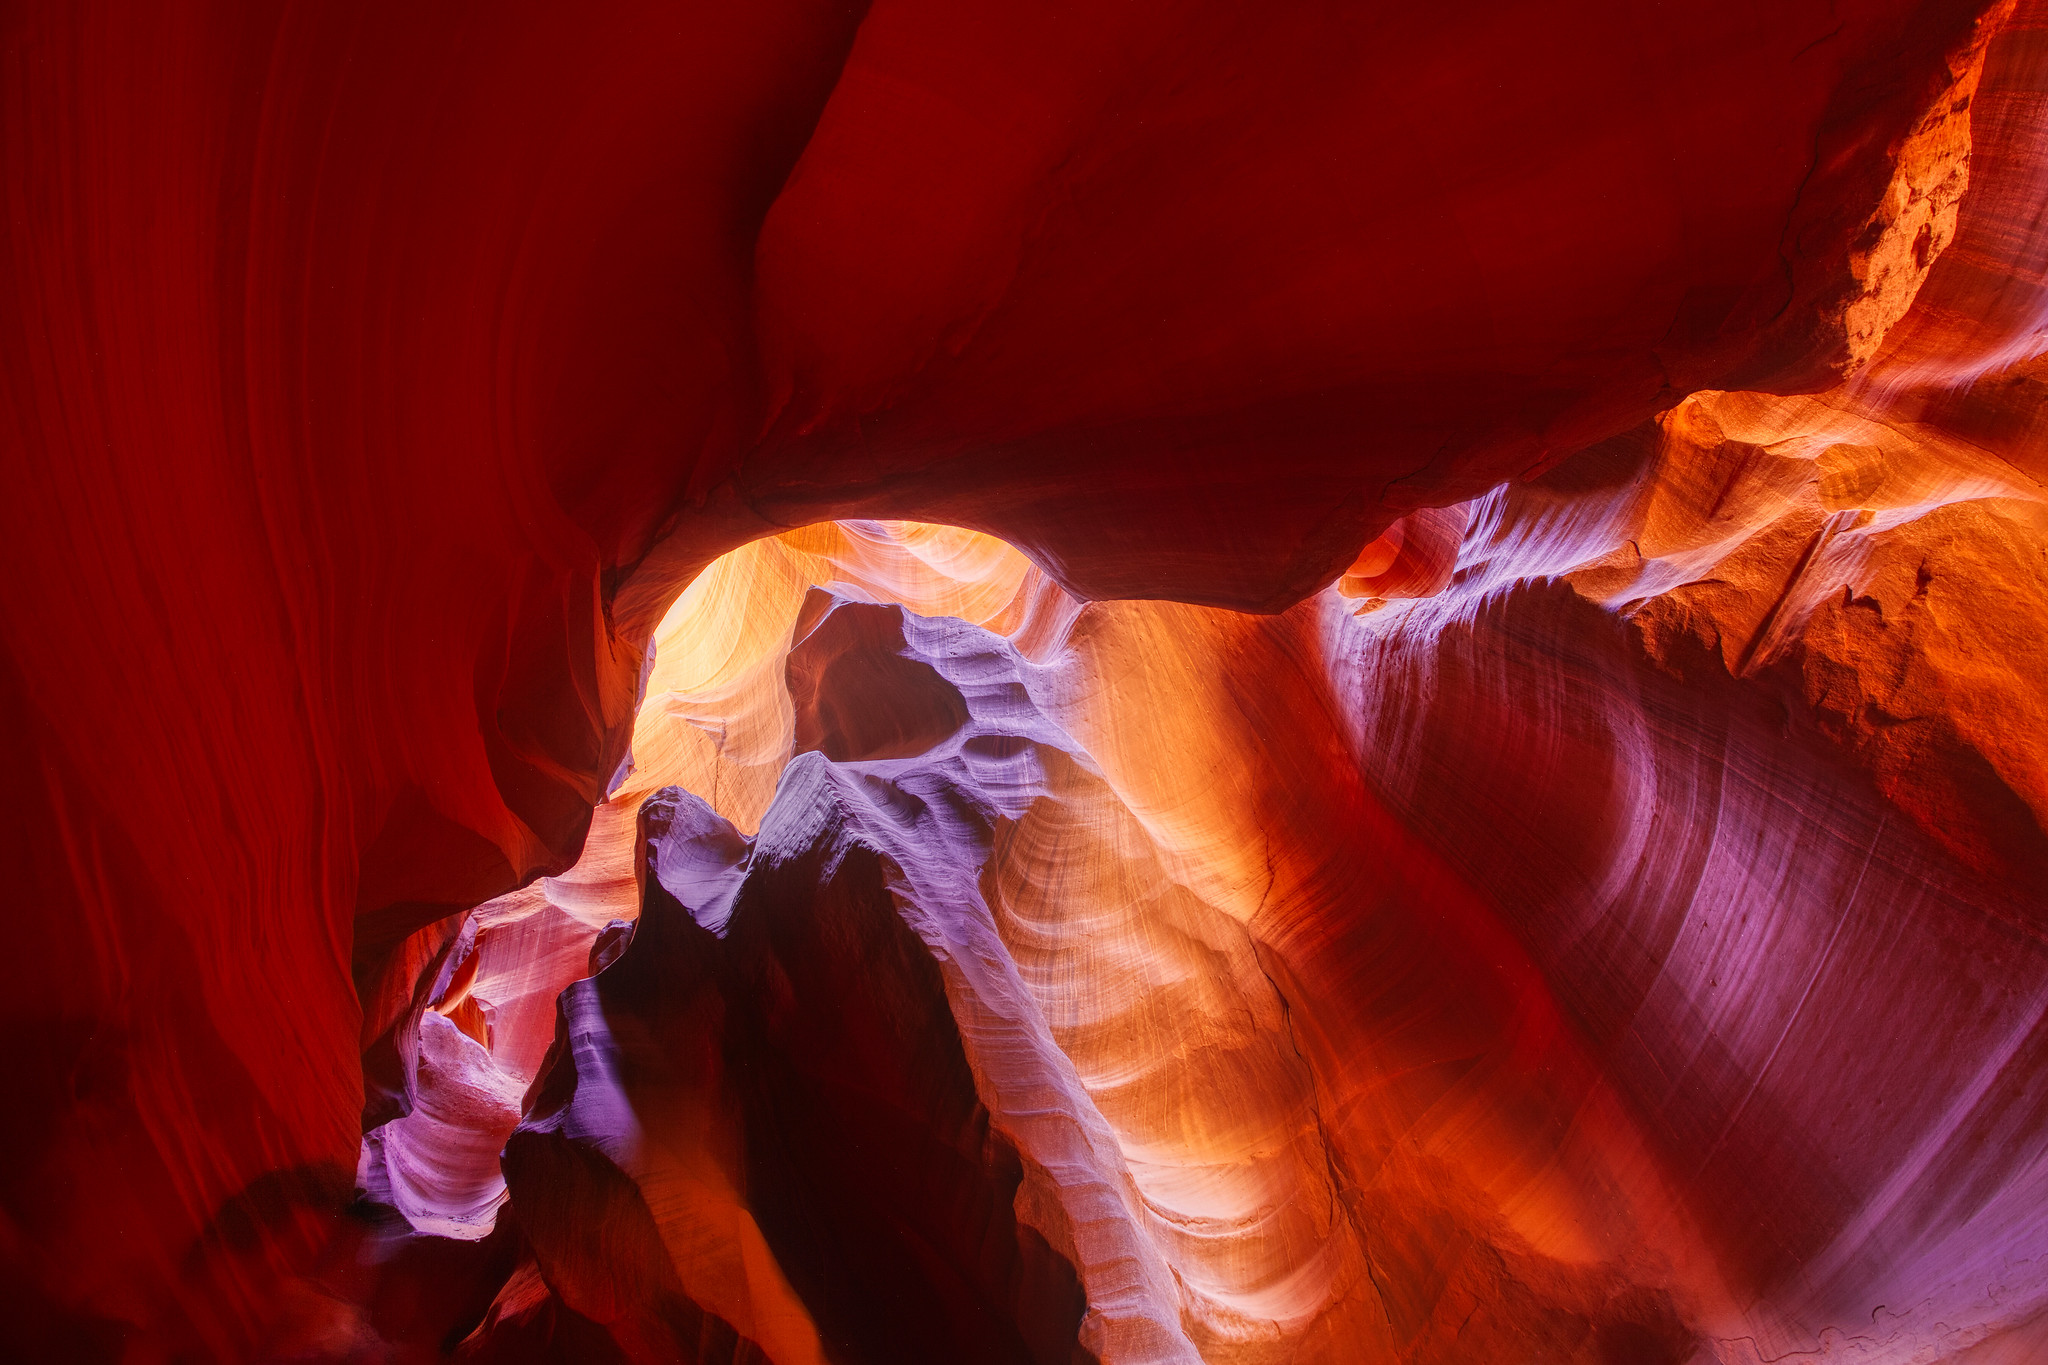 Antelope Canyon: Best Photos of Arizona's Famous Slot Canyon